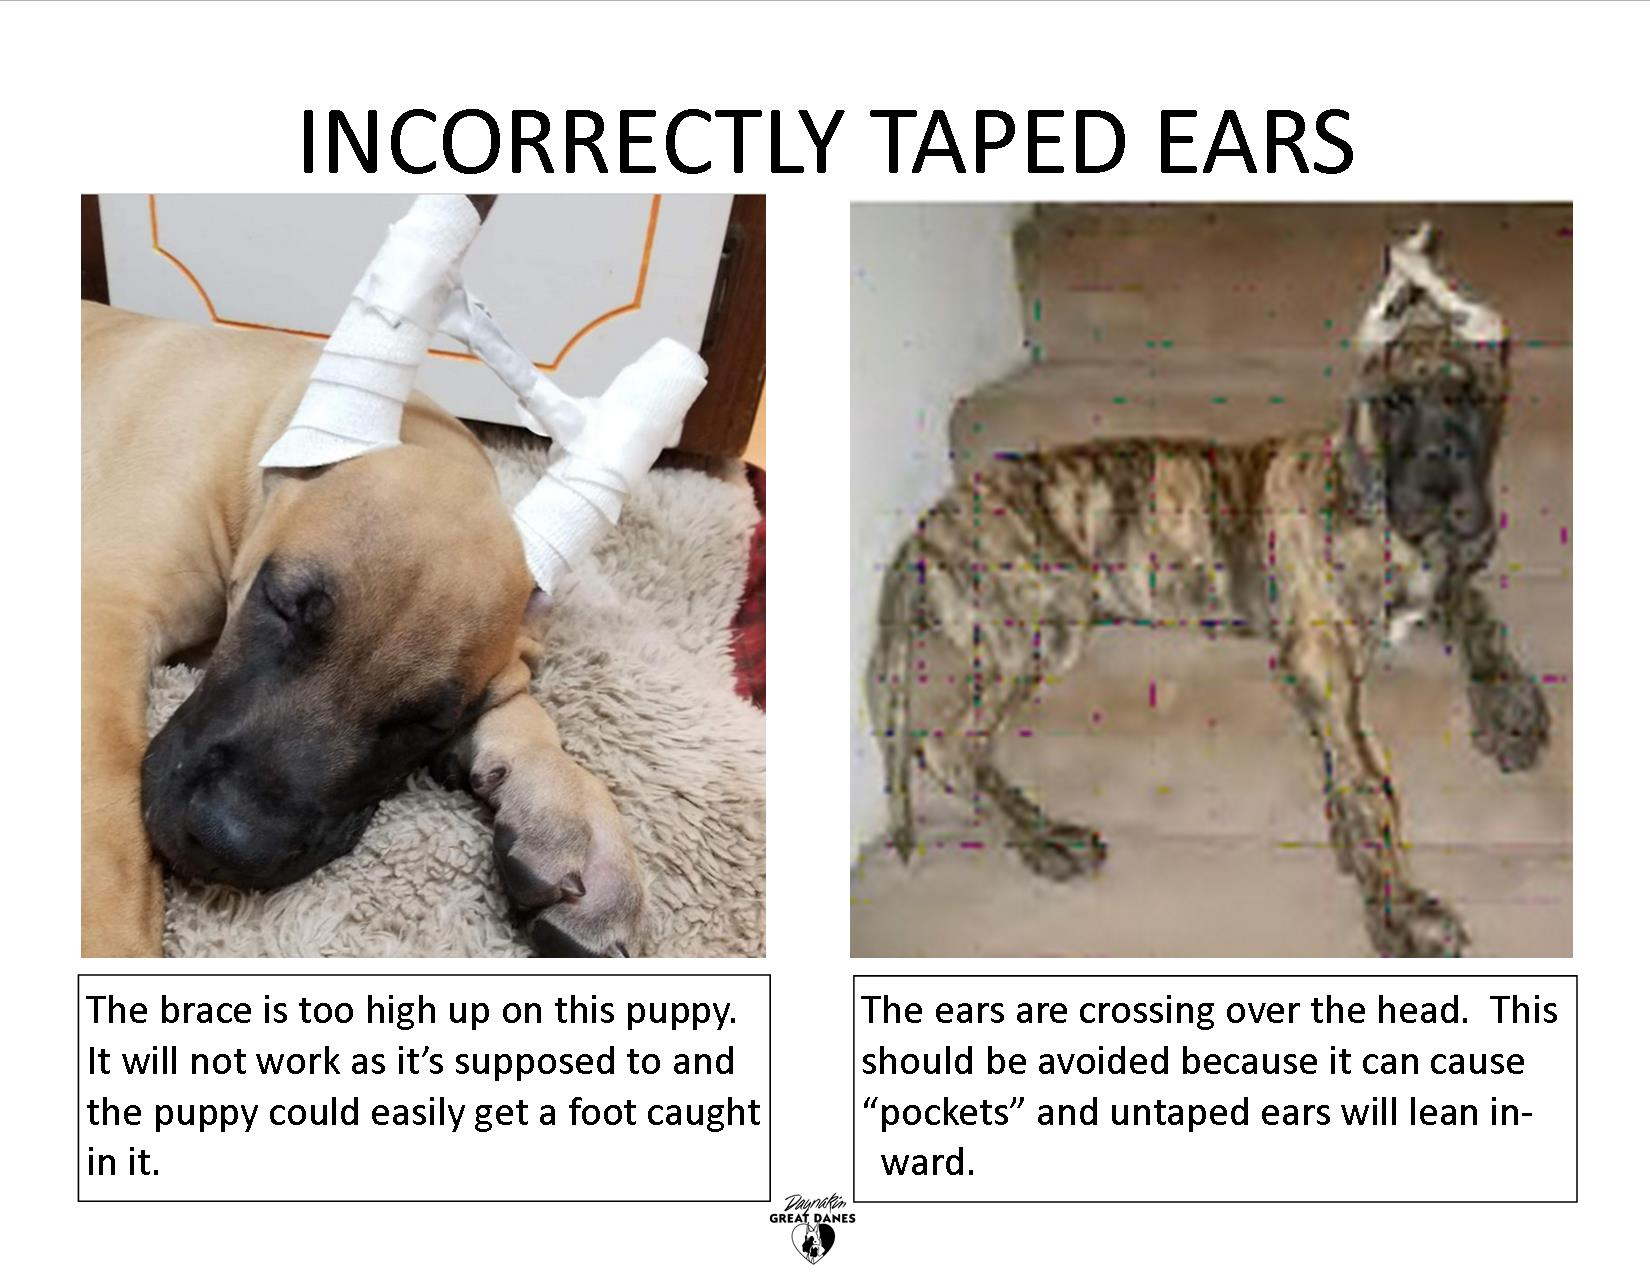 Incorrectly tapes ears